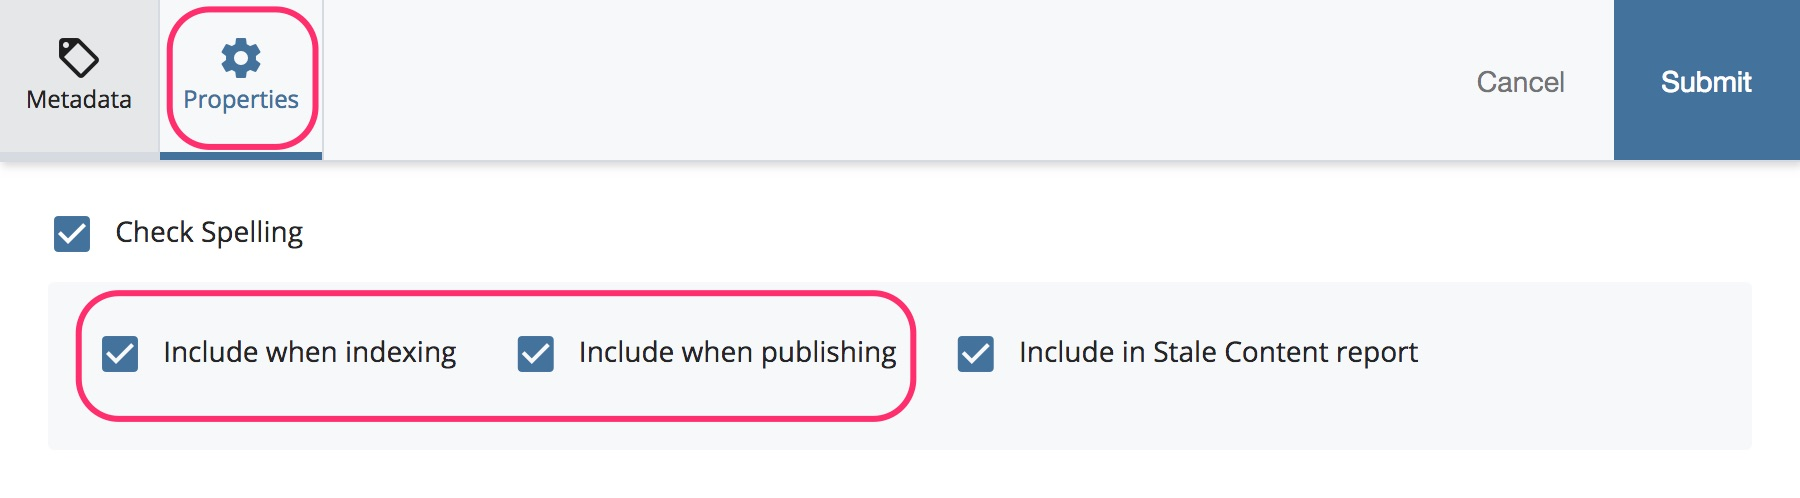 Screenshot: Uncheck Include when publishing and uncheck Include when indexing